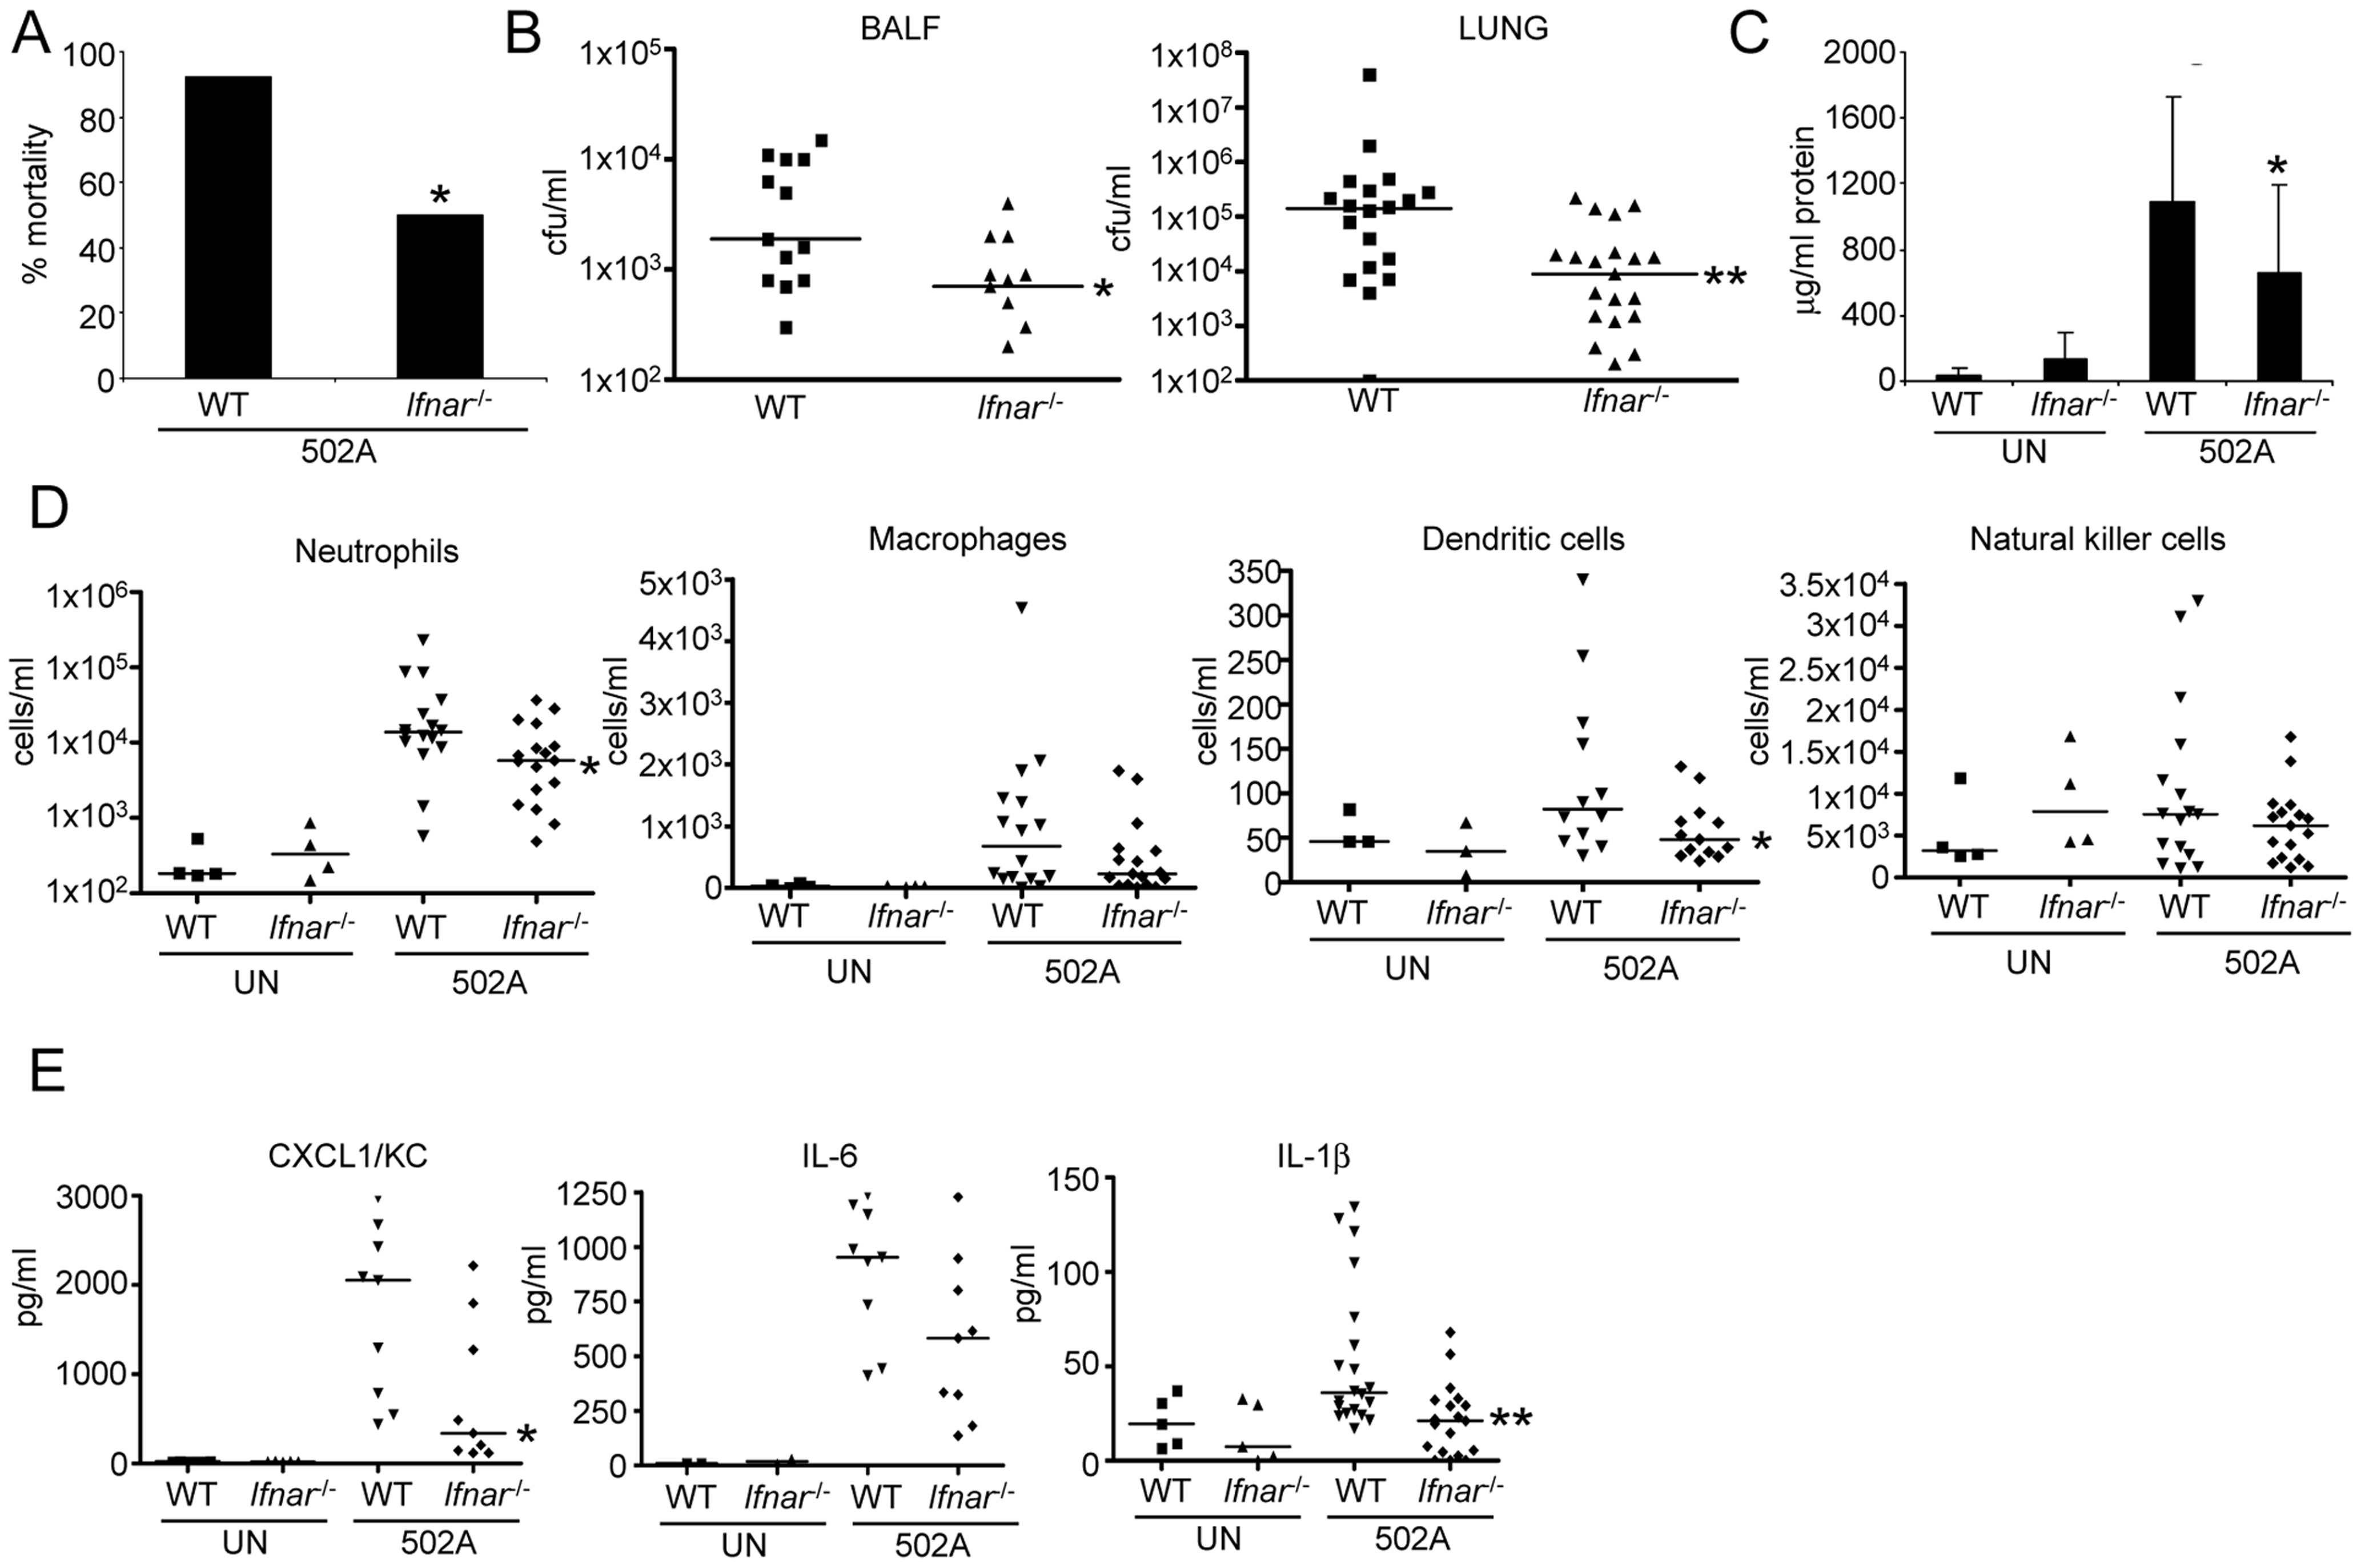 Type I IFN signaling contributes to in vivo virulence of 502A.